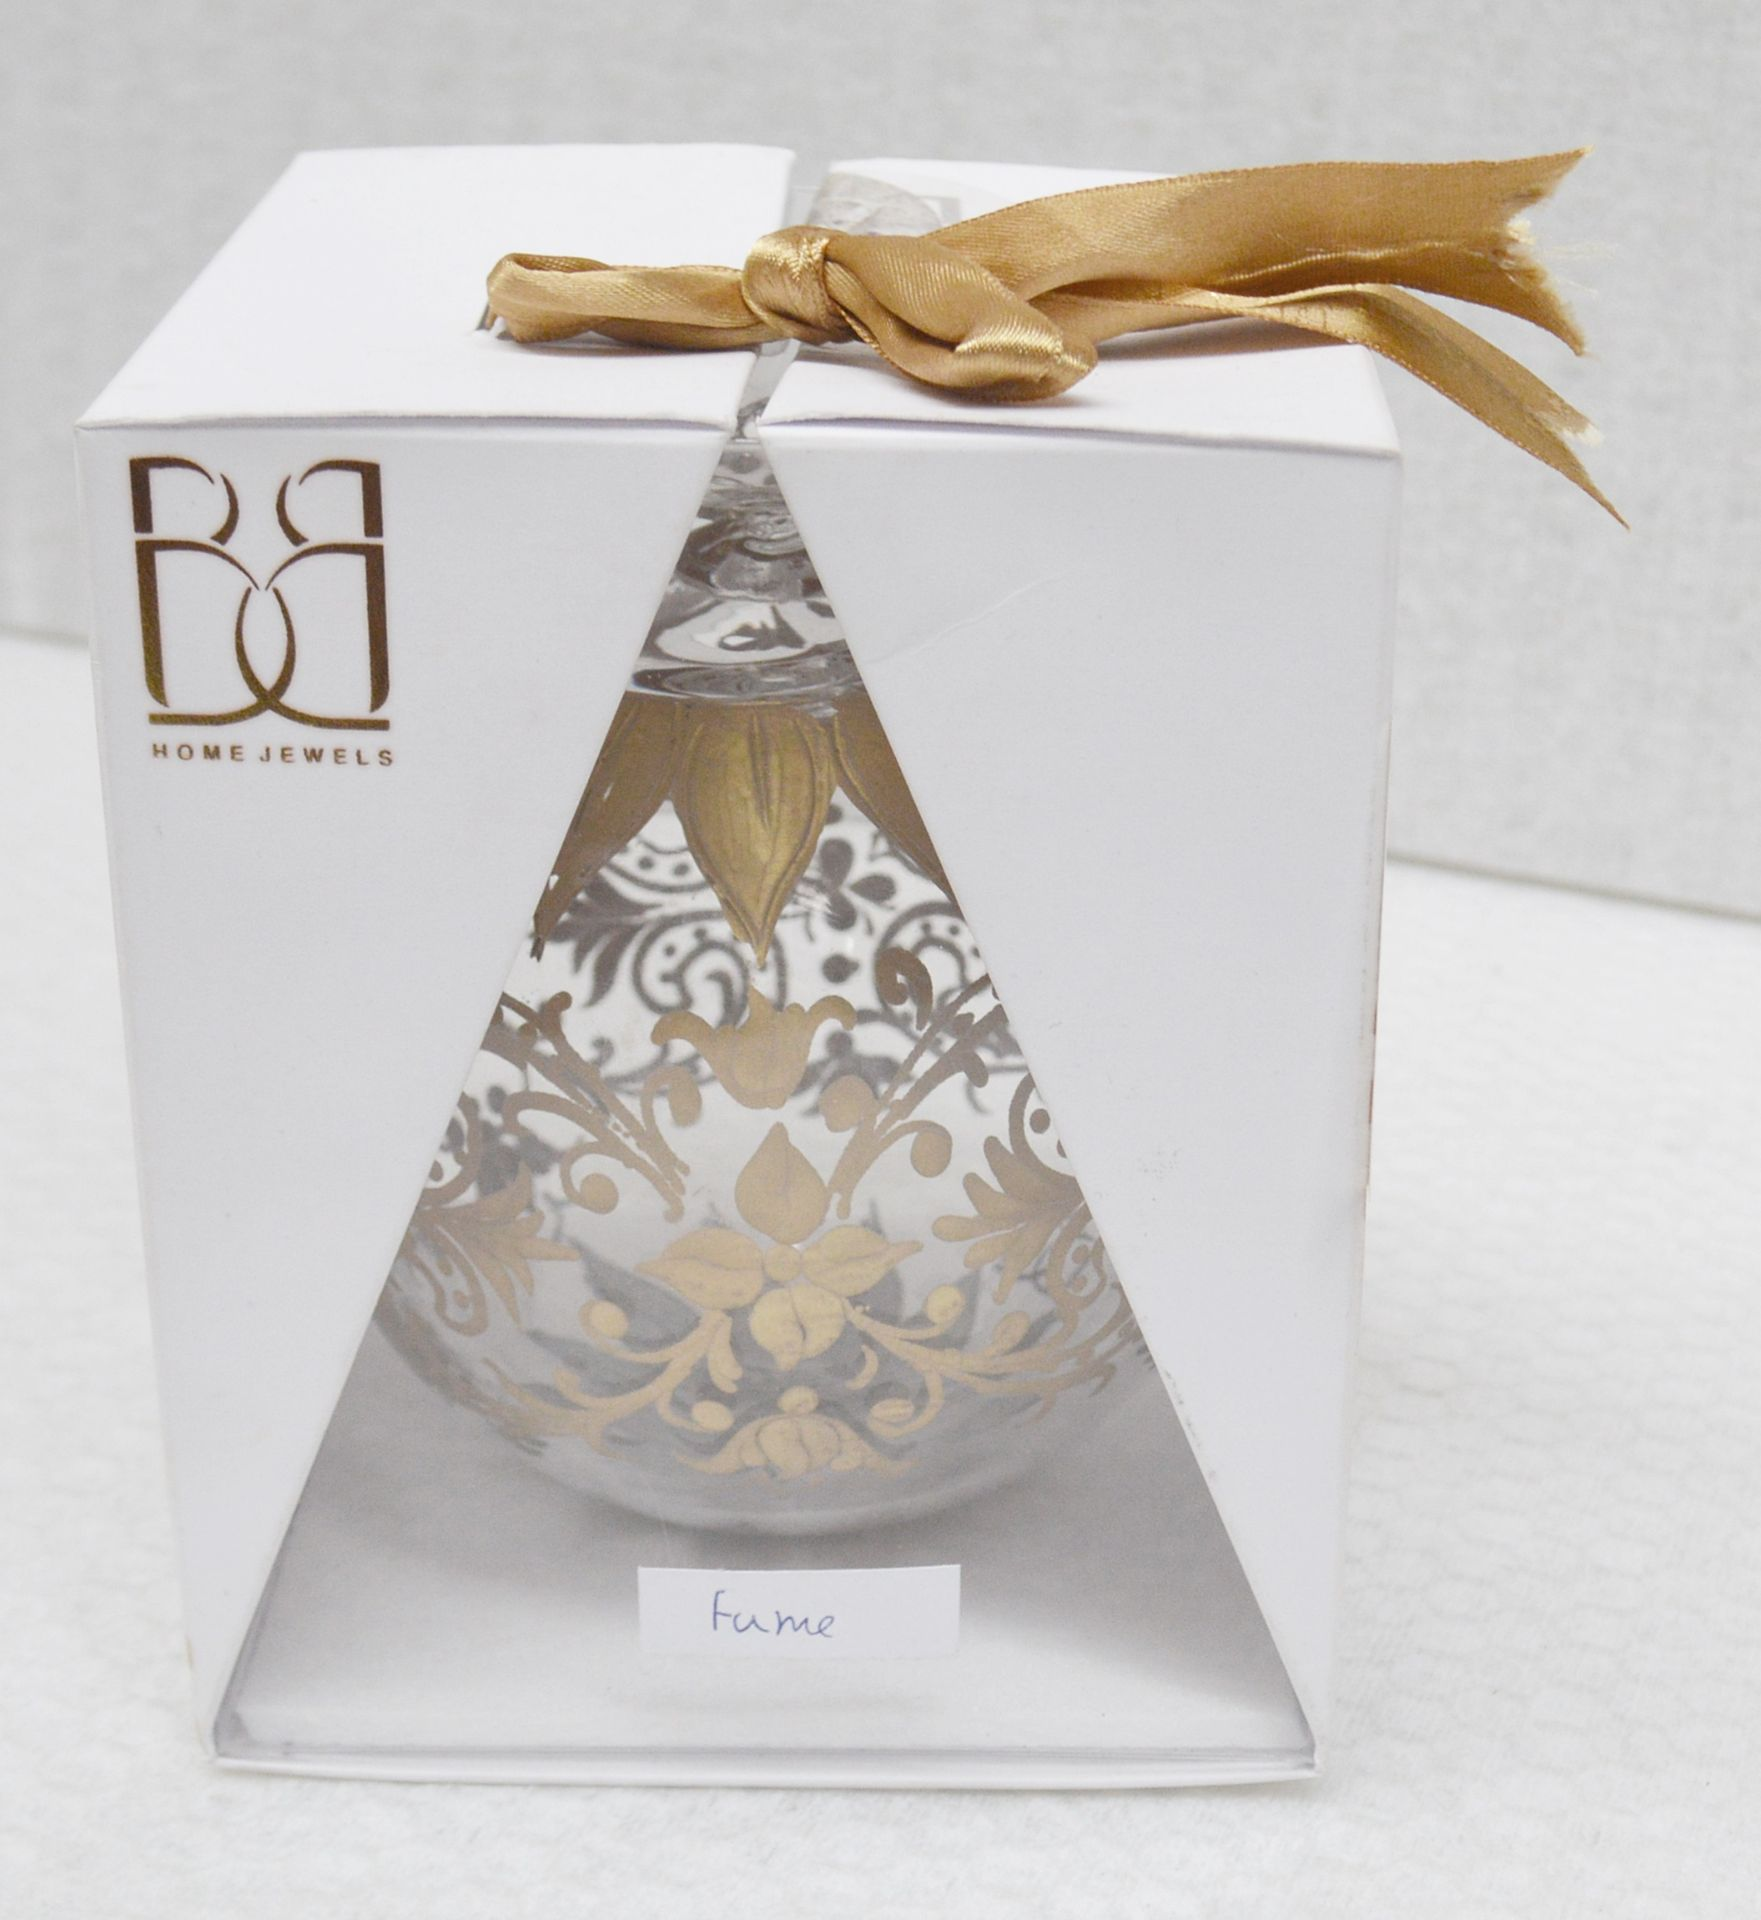 1 x BALDI 'Home Jewels' Italian Hand-crafted Artisan Christmas Tree Decoration In Gold - RRP £124.00 - Image 3 of 4